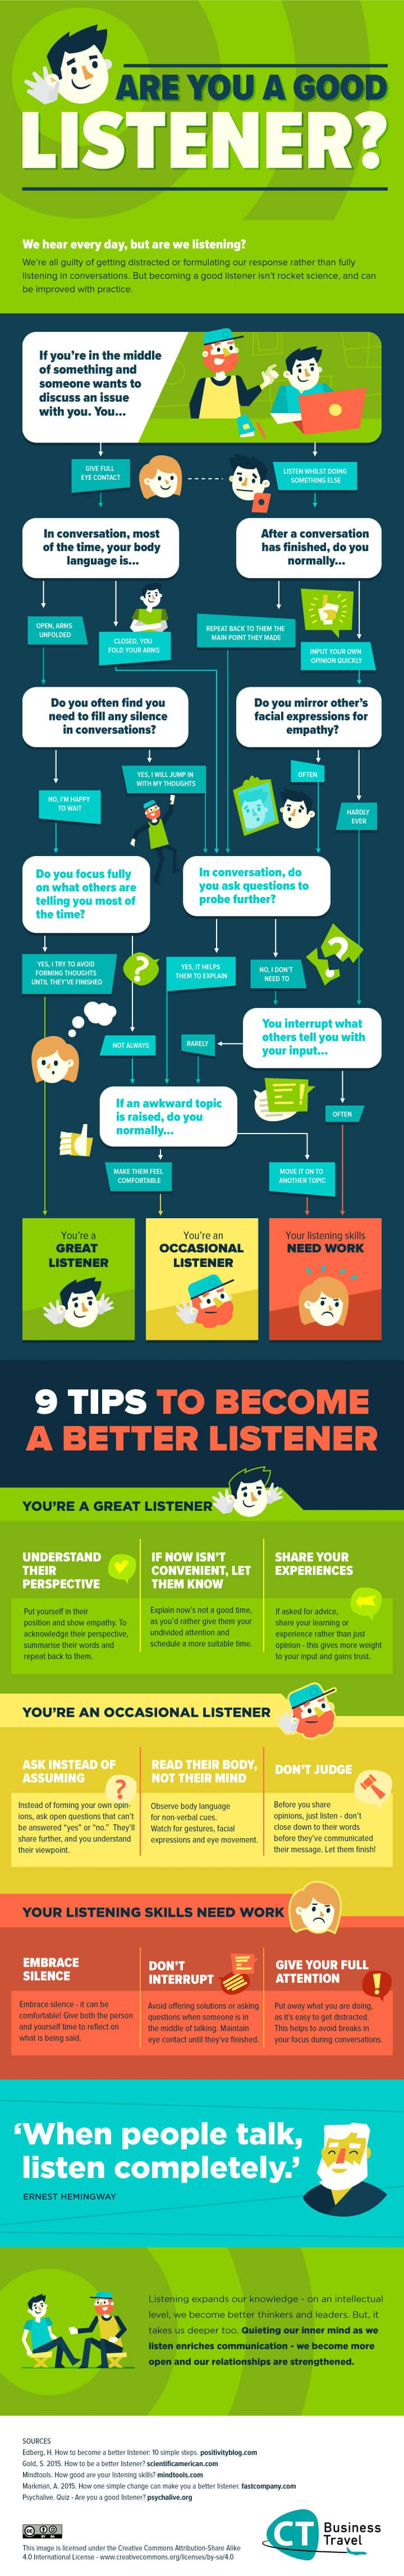 Communication Are You A Good listener